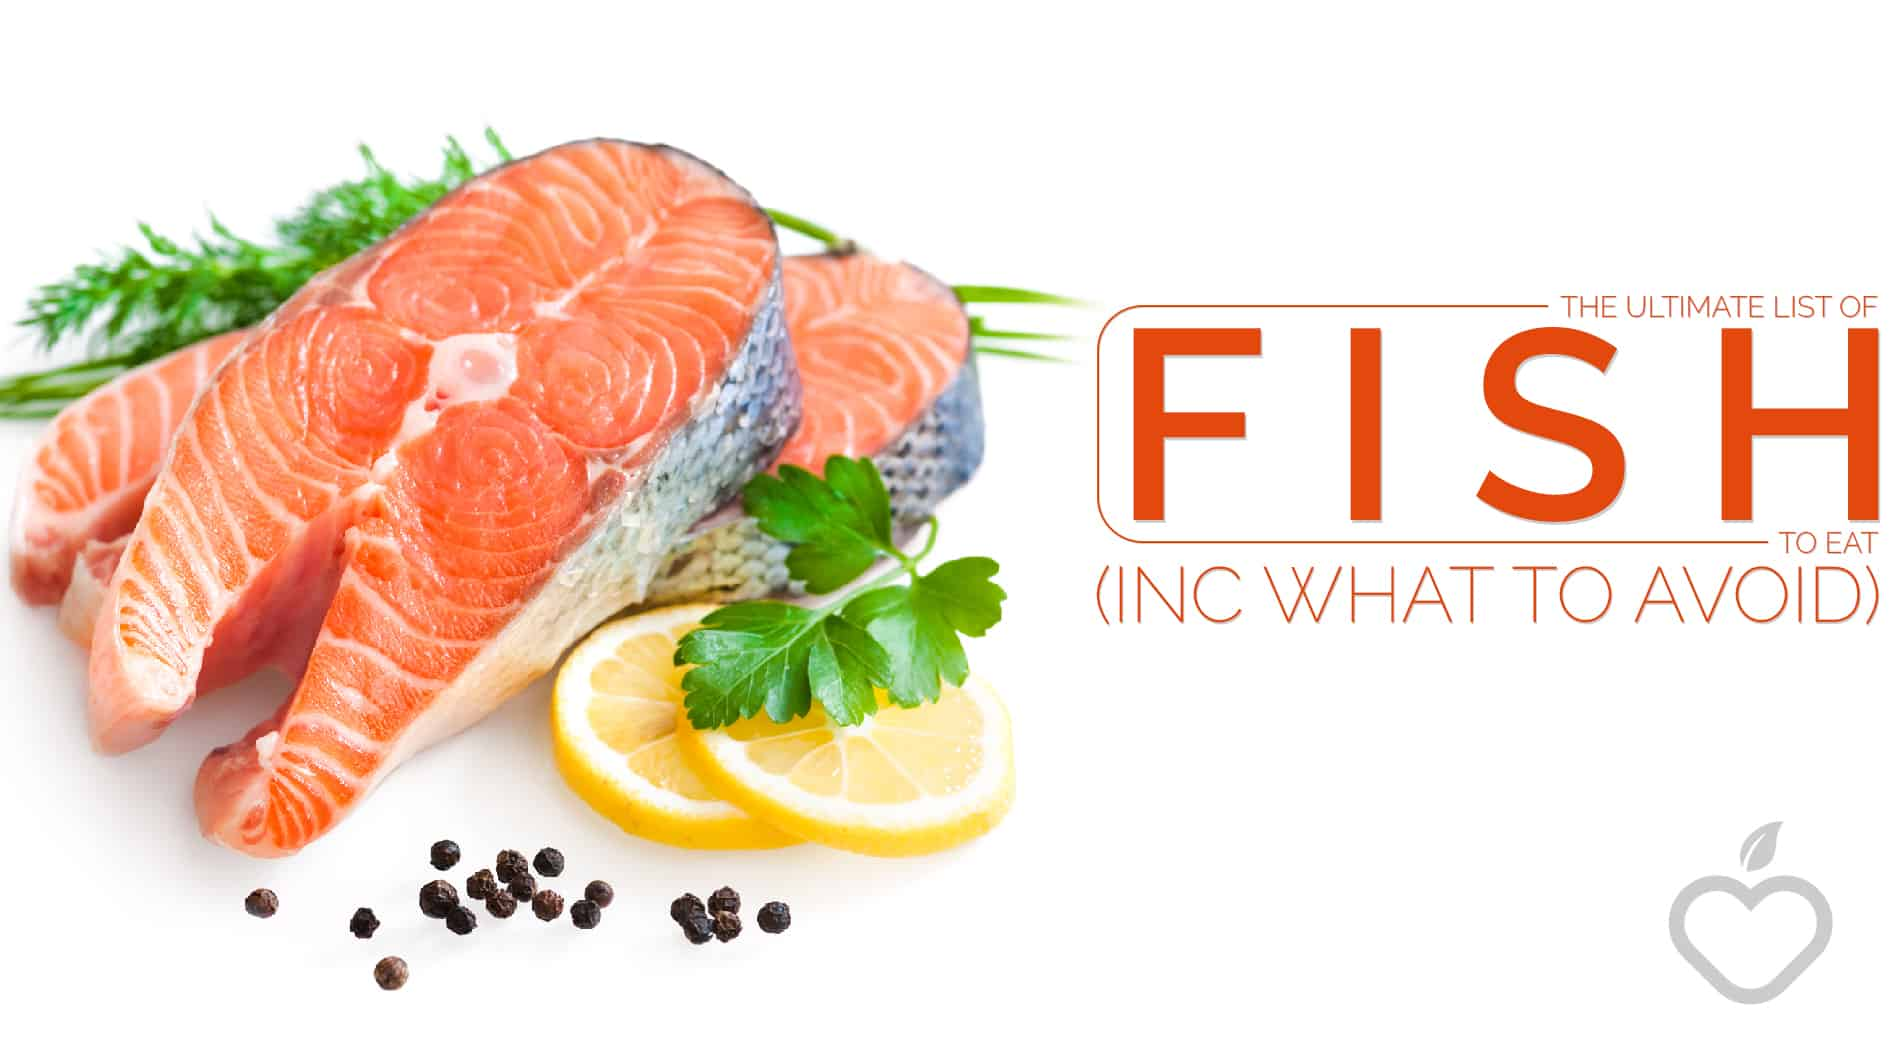 The ultimate list of fish to eat inc what to avoid new for What fish is healthy to eat